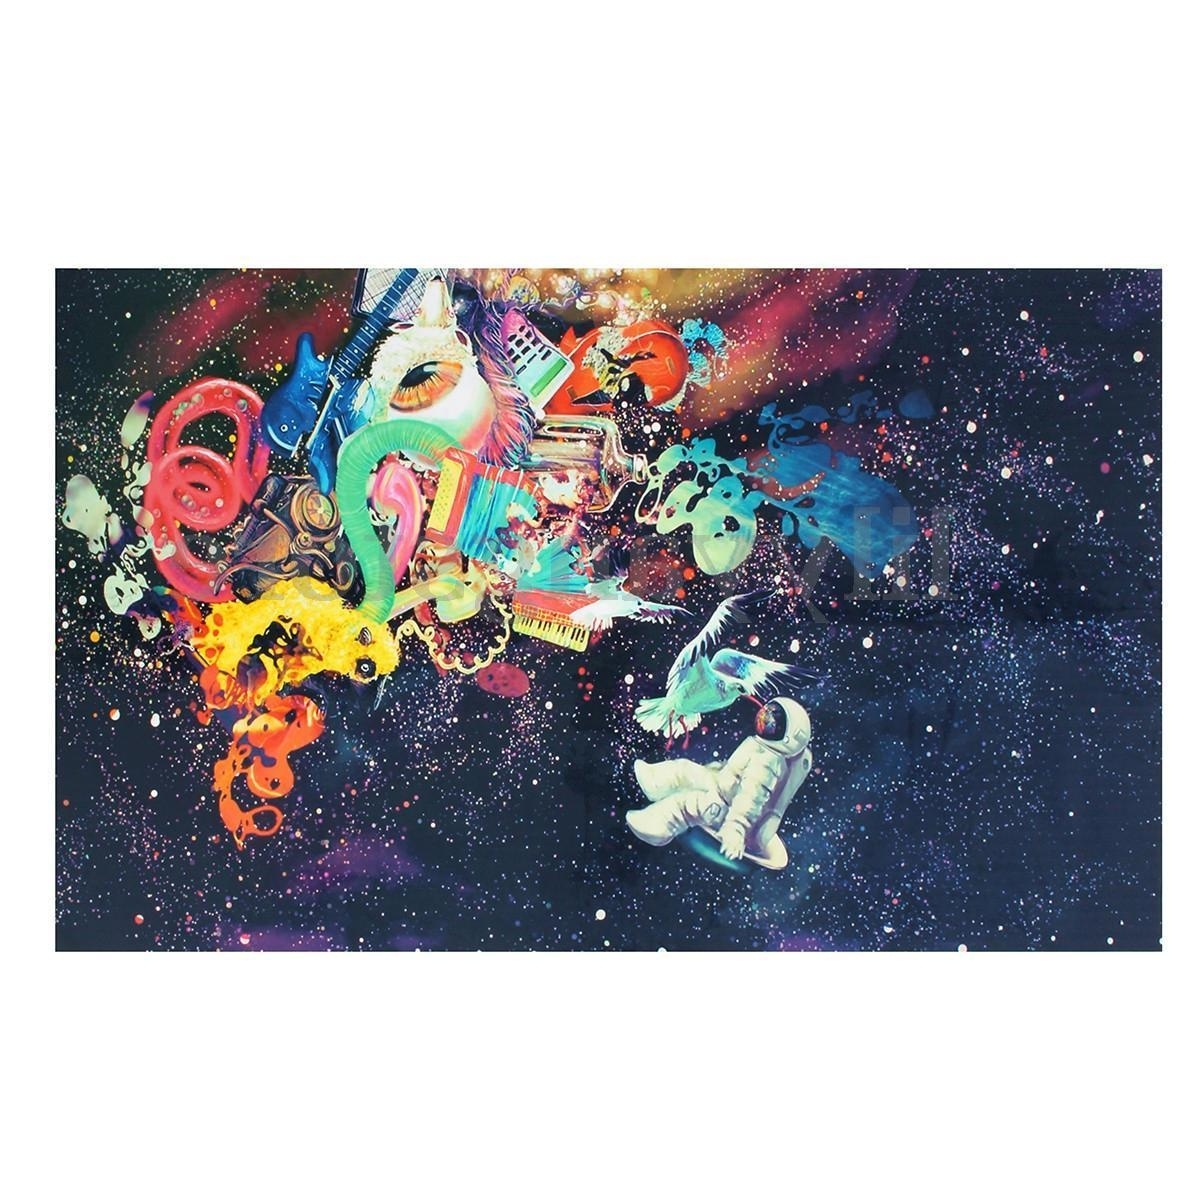 Silk Fabric Wall Art Intended For Most Popular Psychedelic Trippy Art Silk Fabric Poster Modern Space Wall Decor (View 14 of 15)